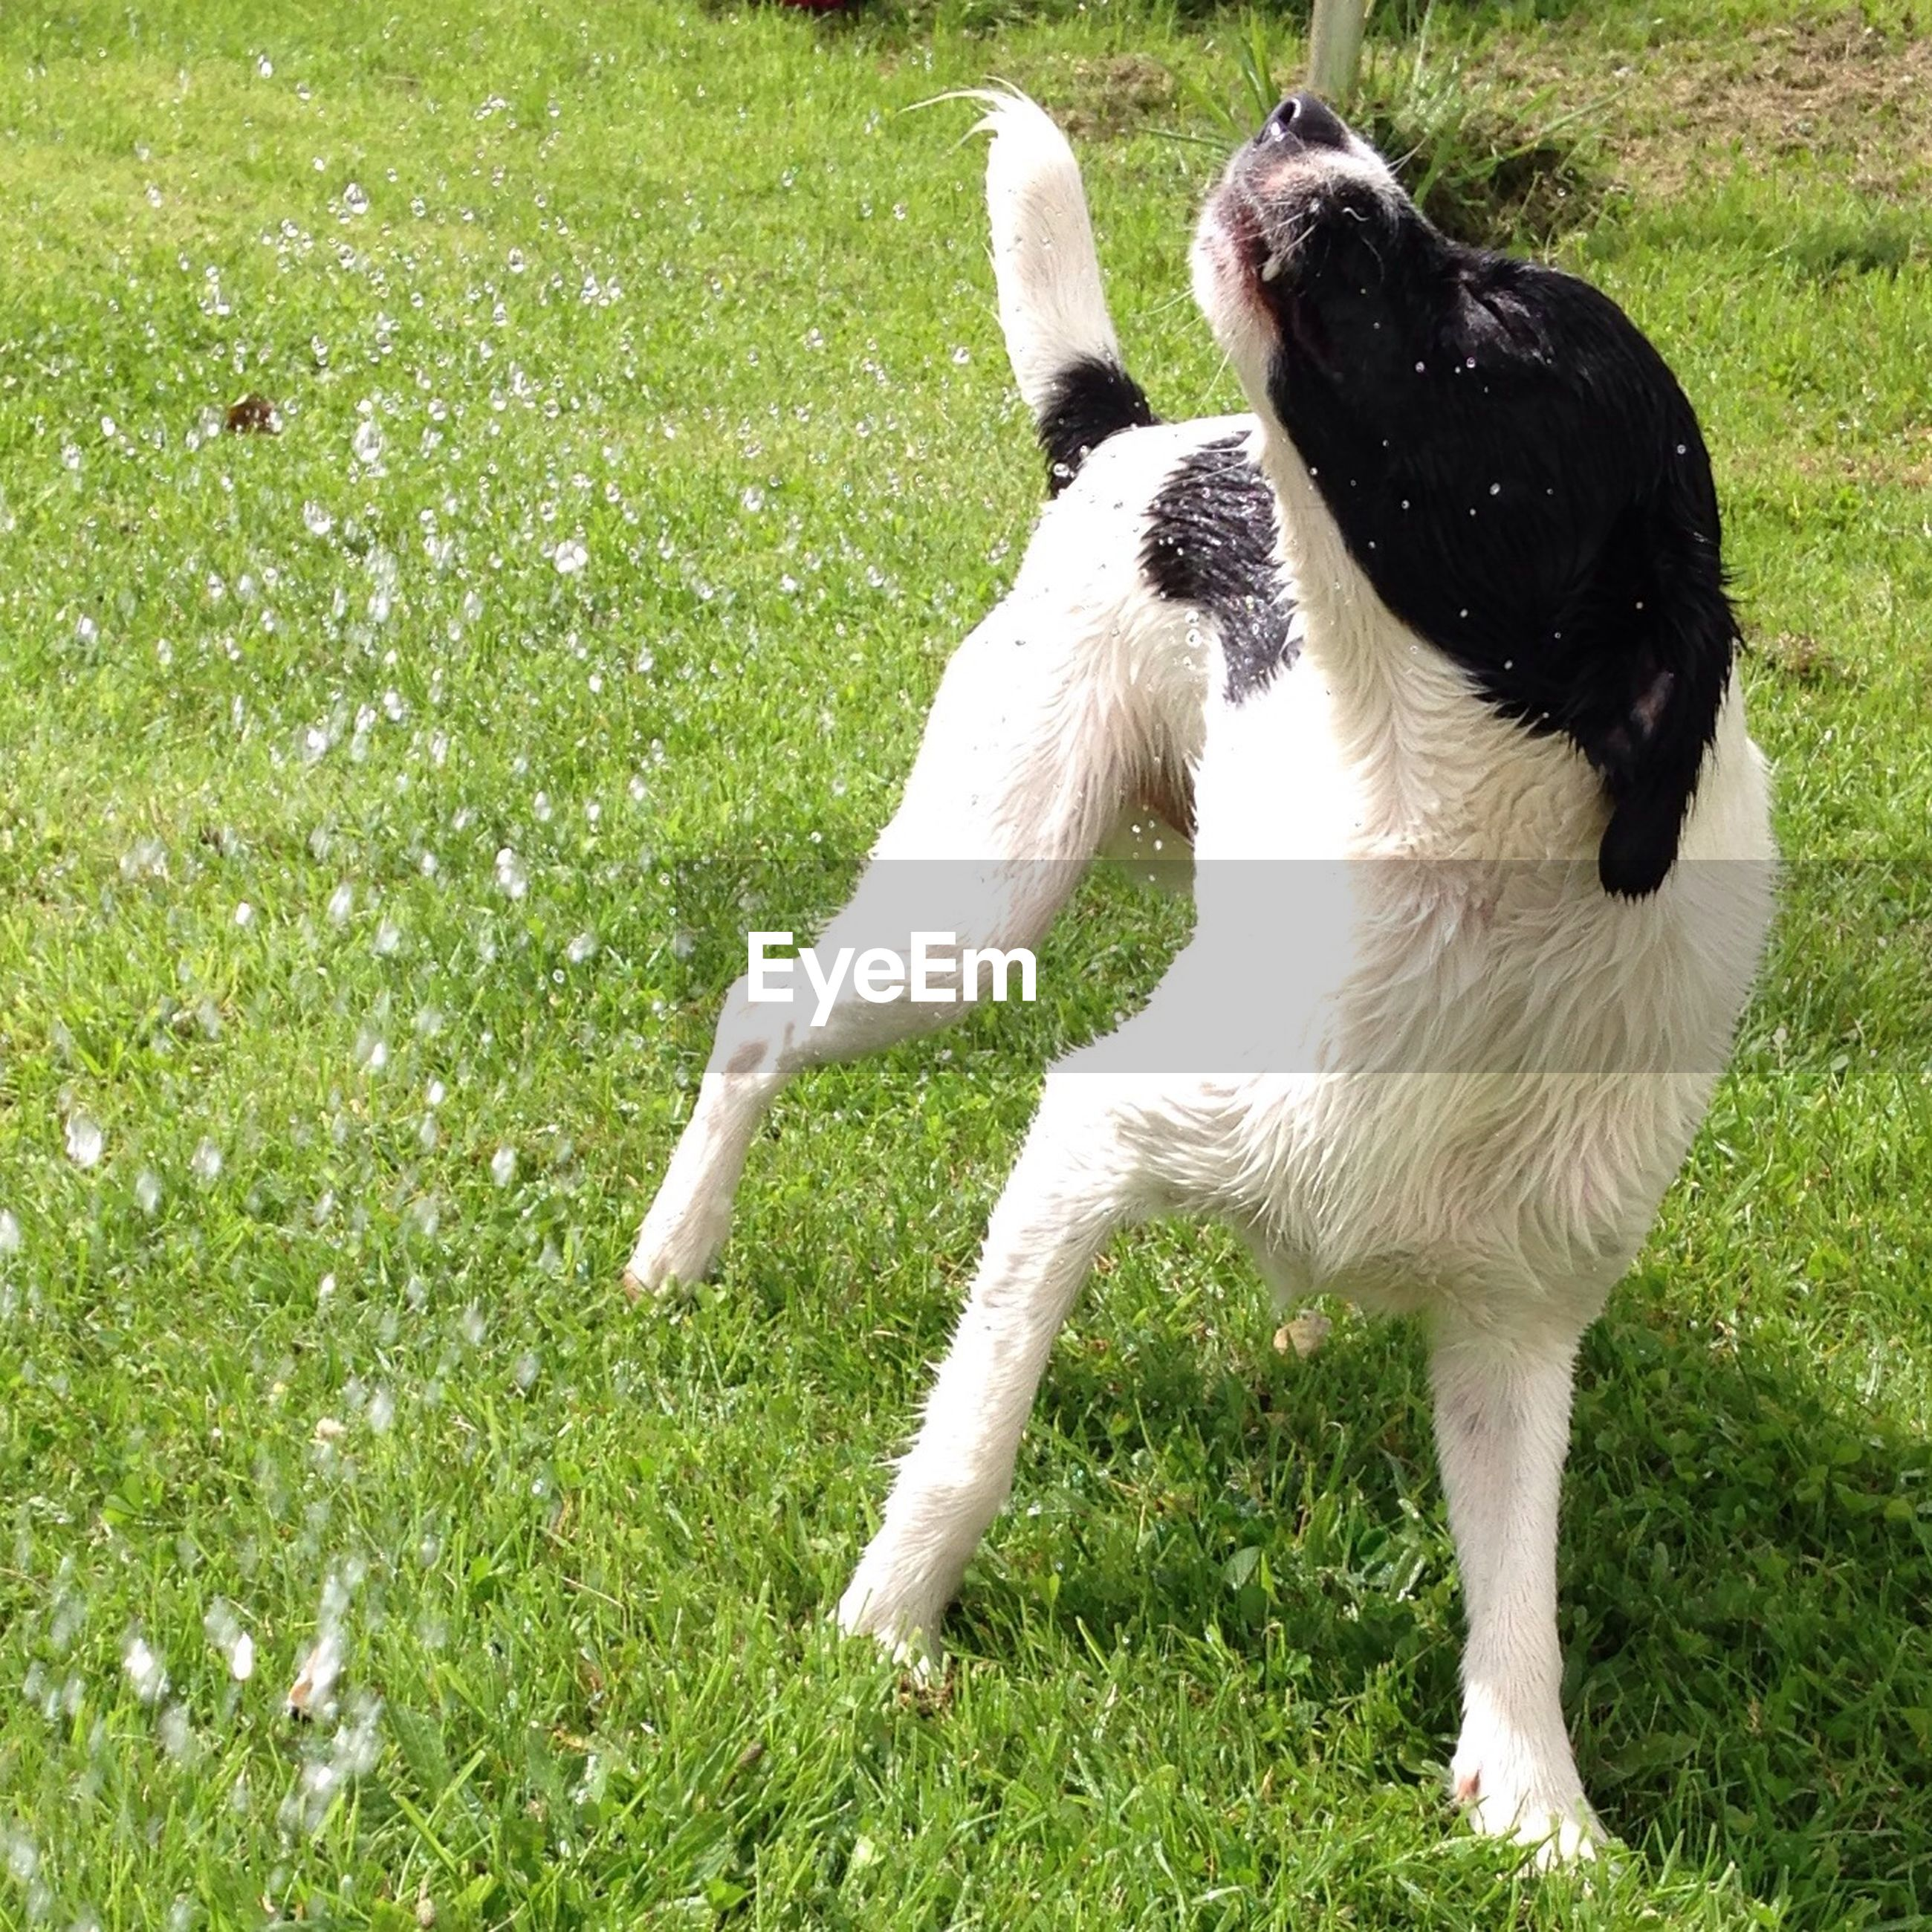 Close-up of playful dog shaking off water on grassy field